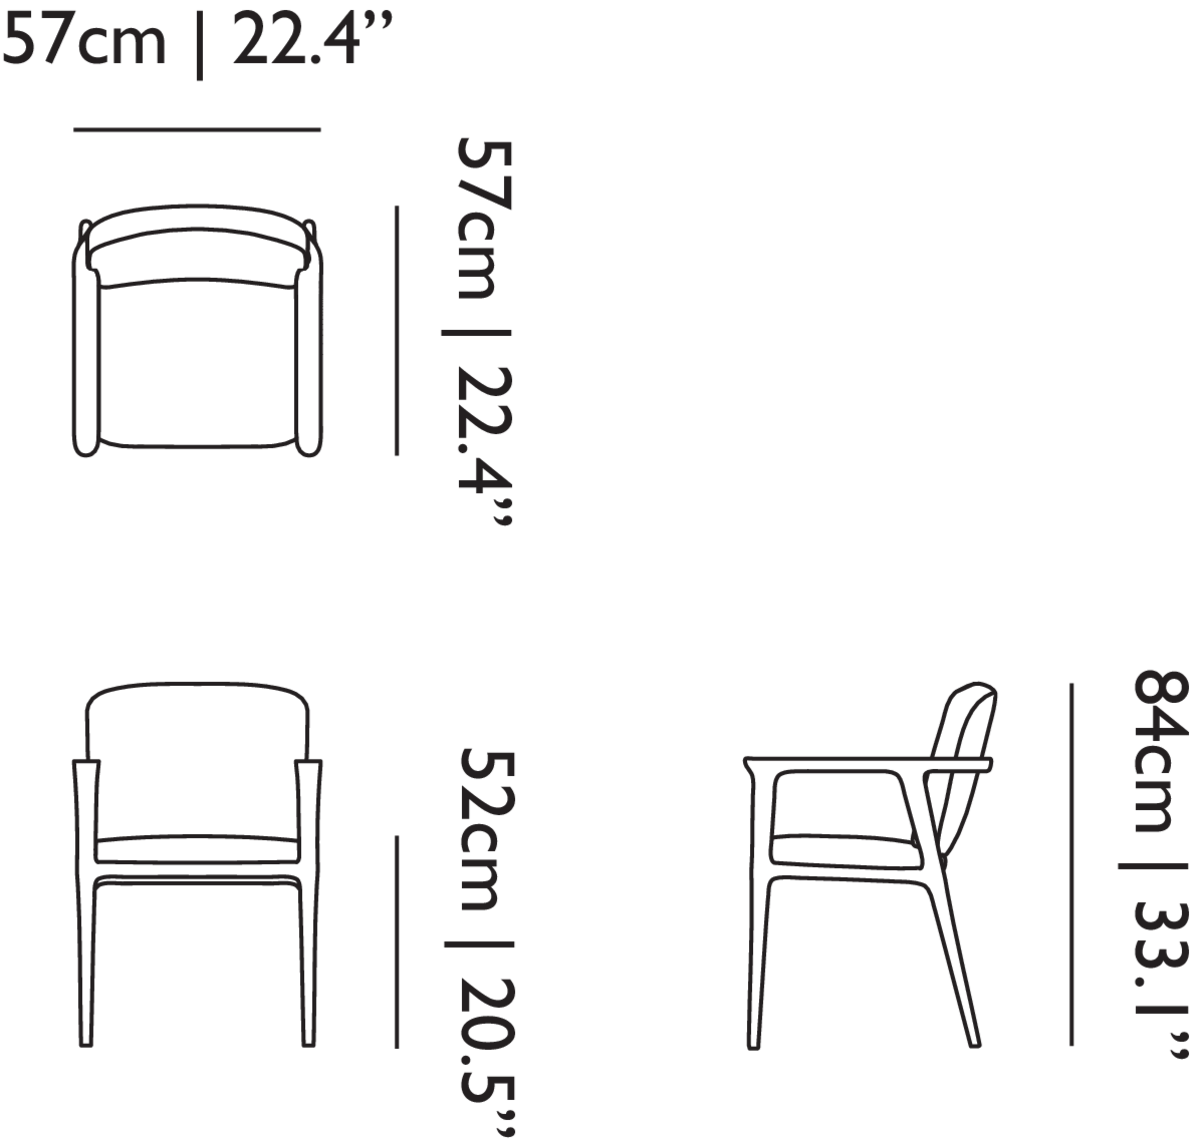 Zio Dining Chair linedrawing with dimensions